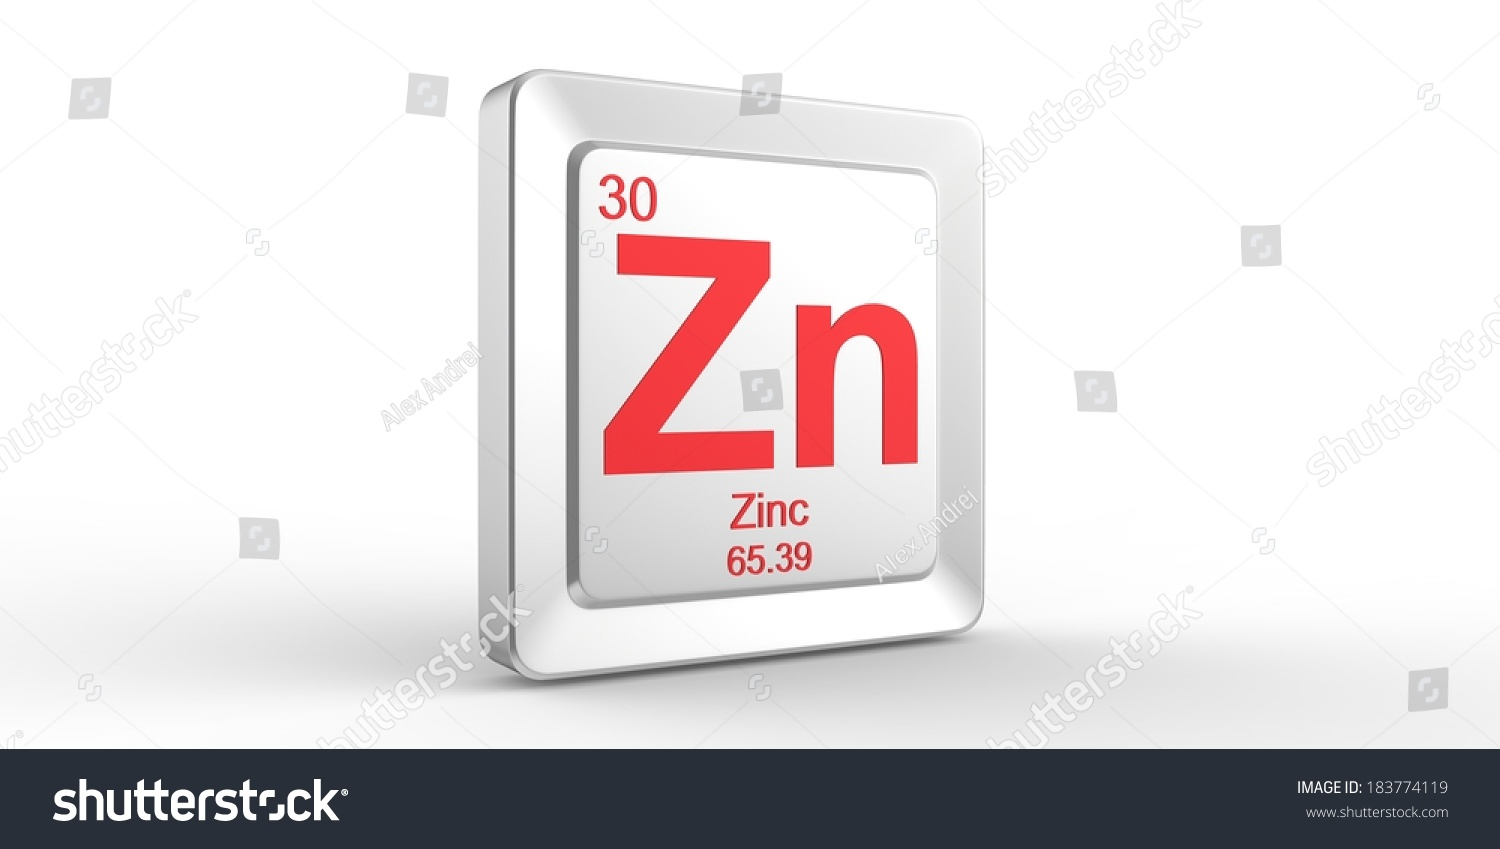 Royalty Free Zn Symbol 30 Material For Zinc Chemical 183774119